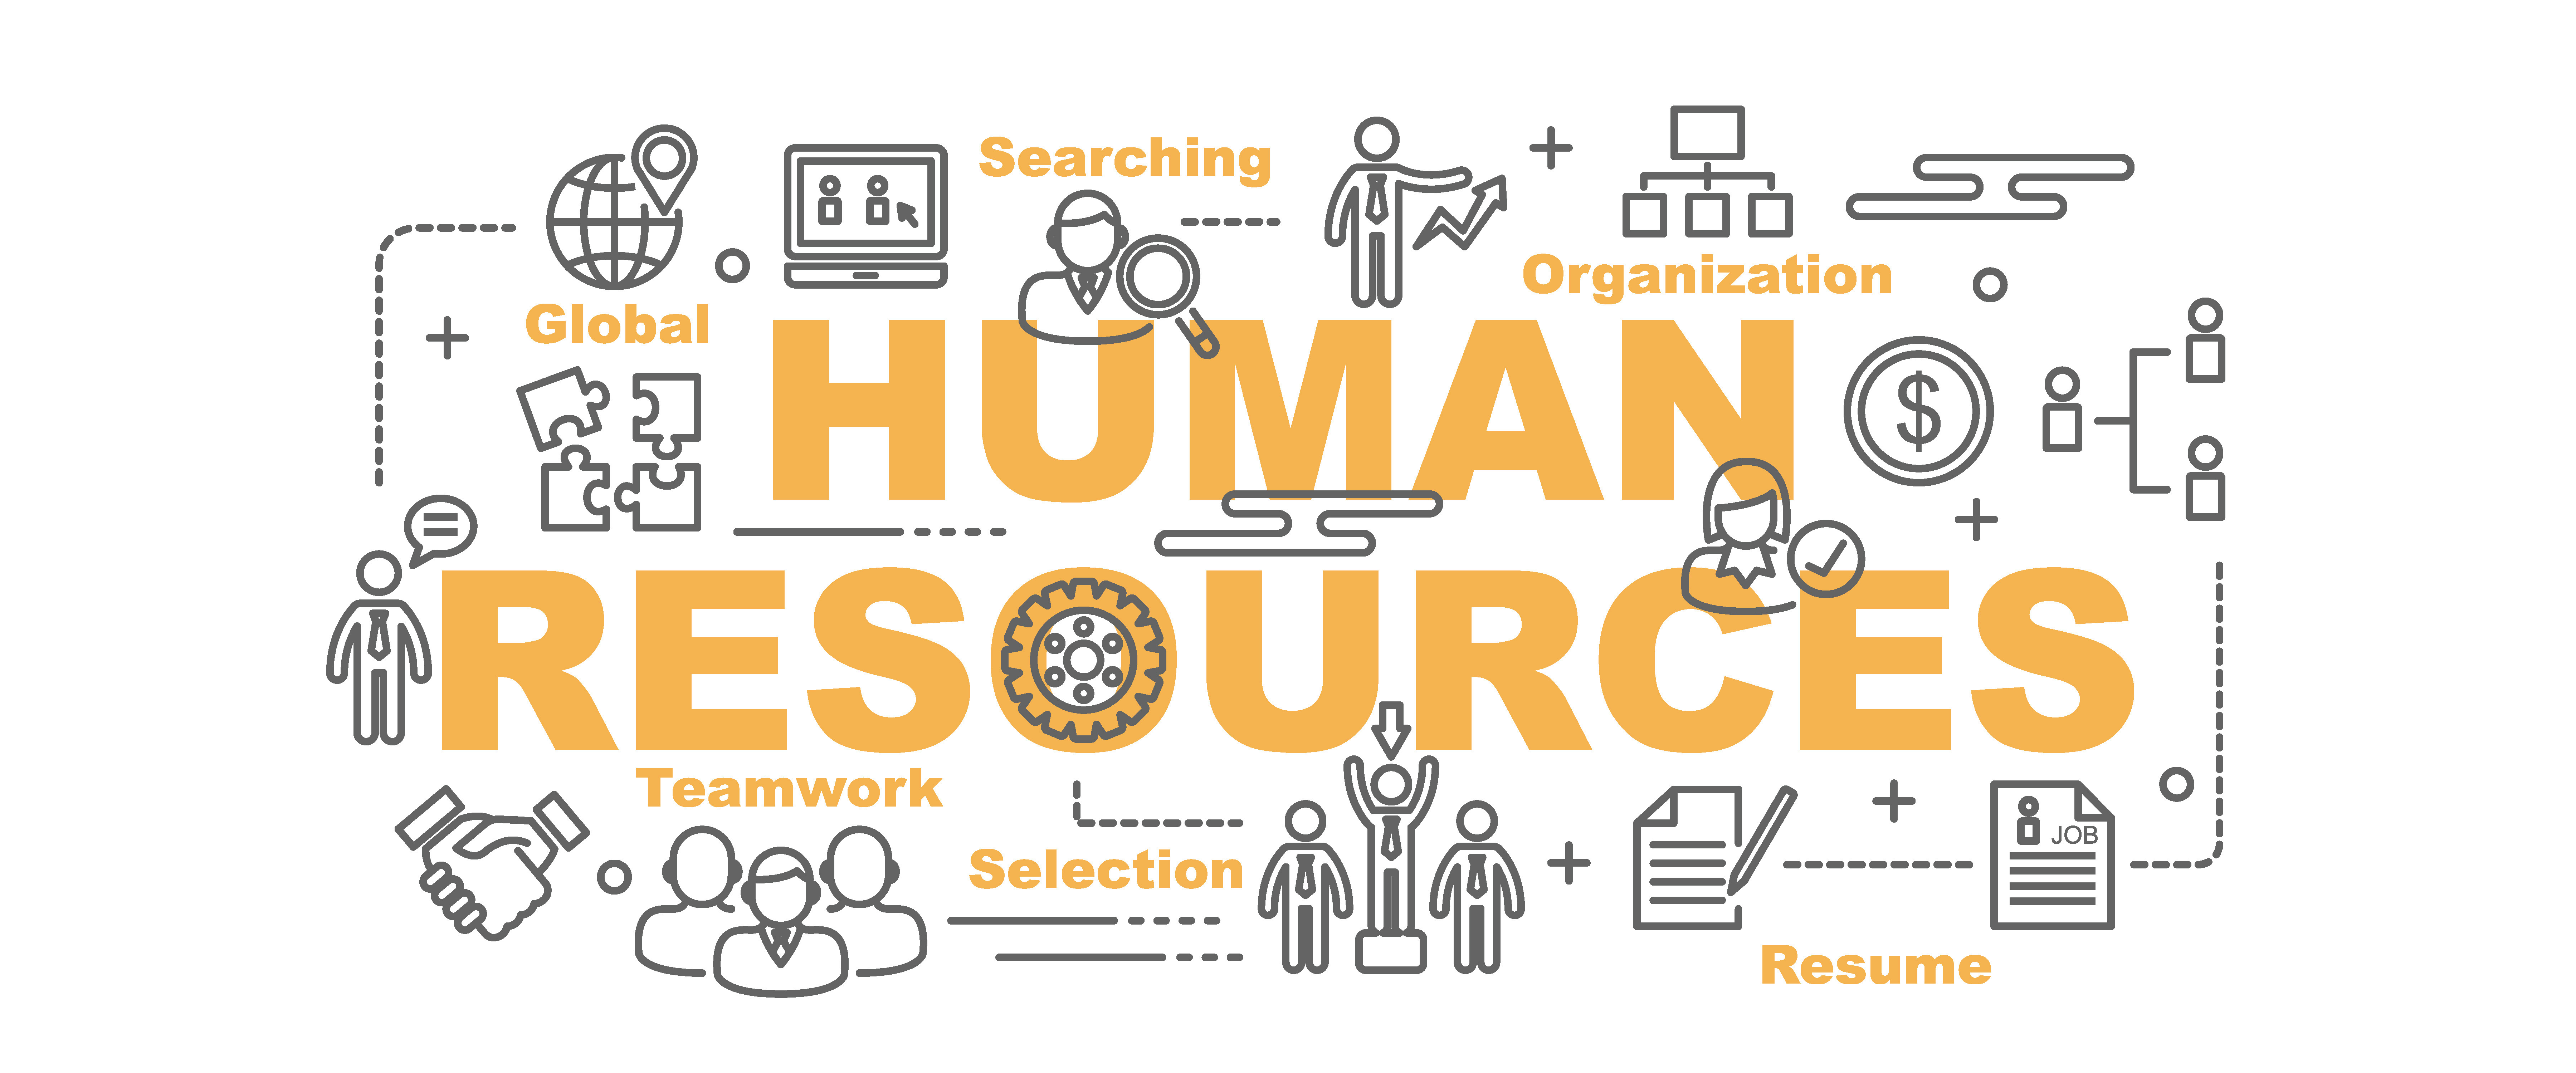 Up to date with Human-Resources